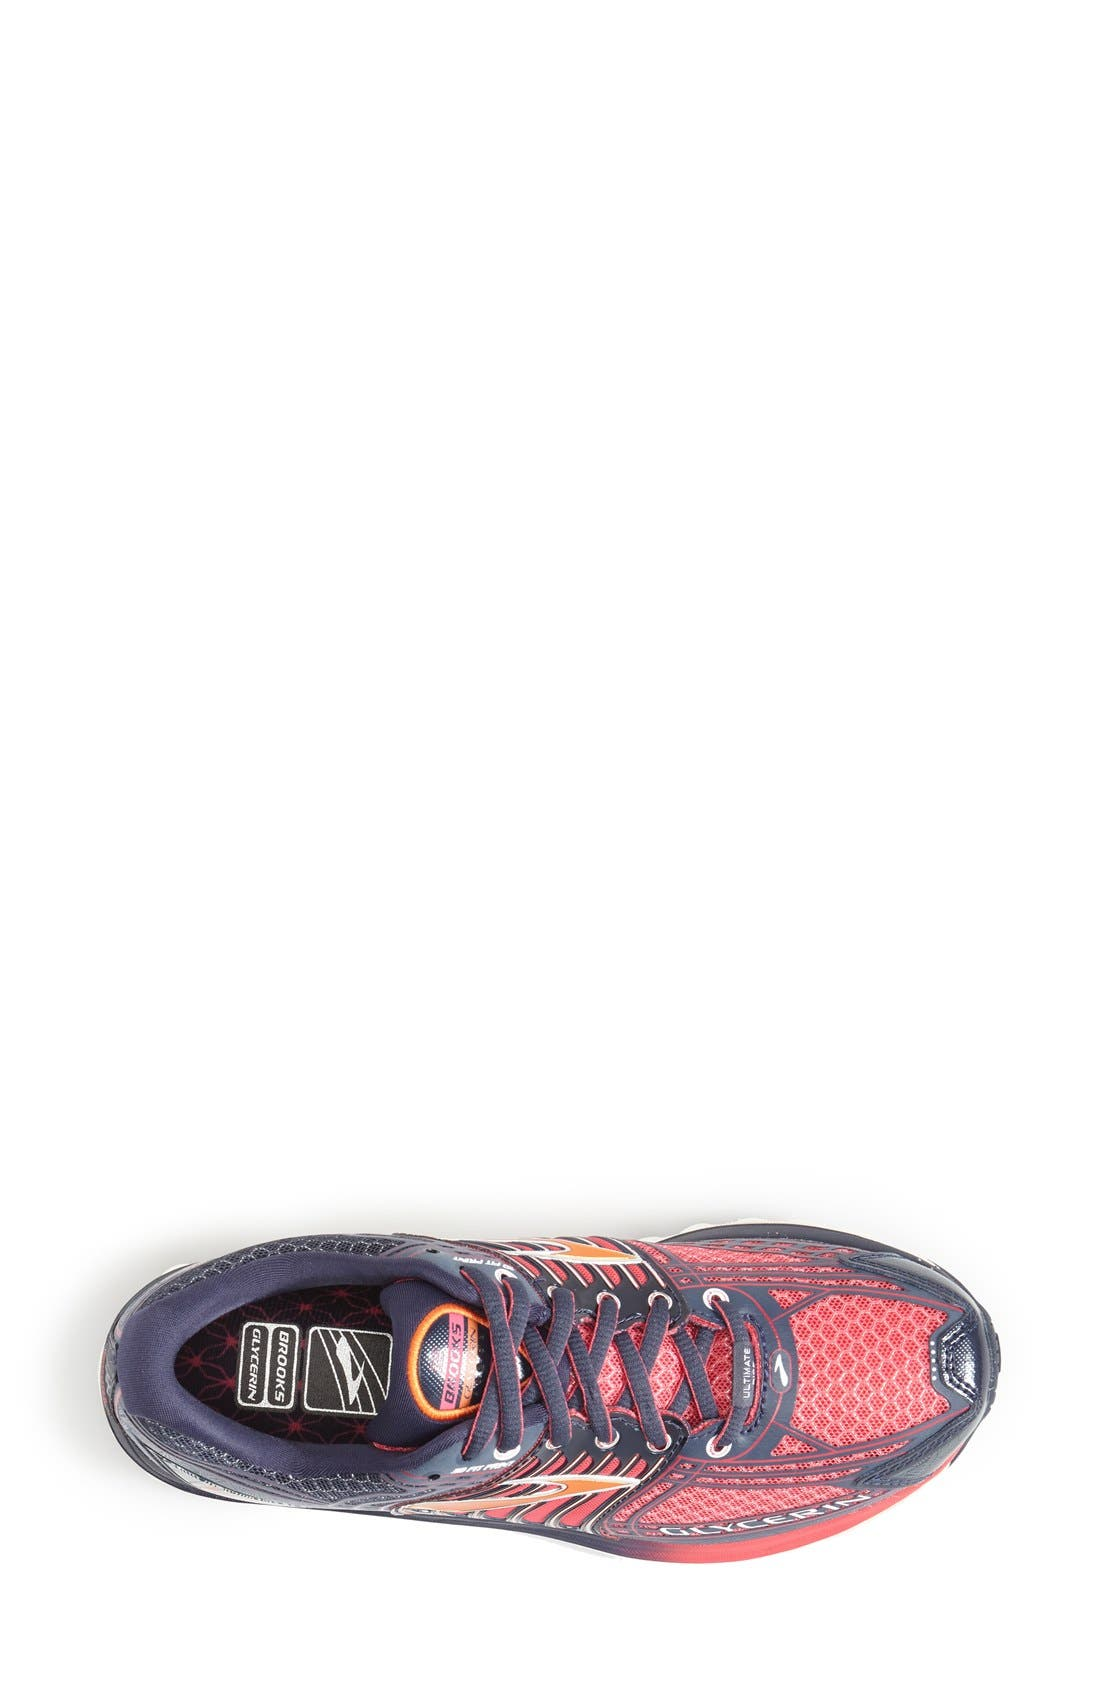 Alternate Image 3  - Brooks 'Glycerin 12' Running Shoe (Women)